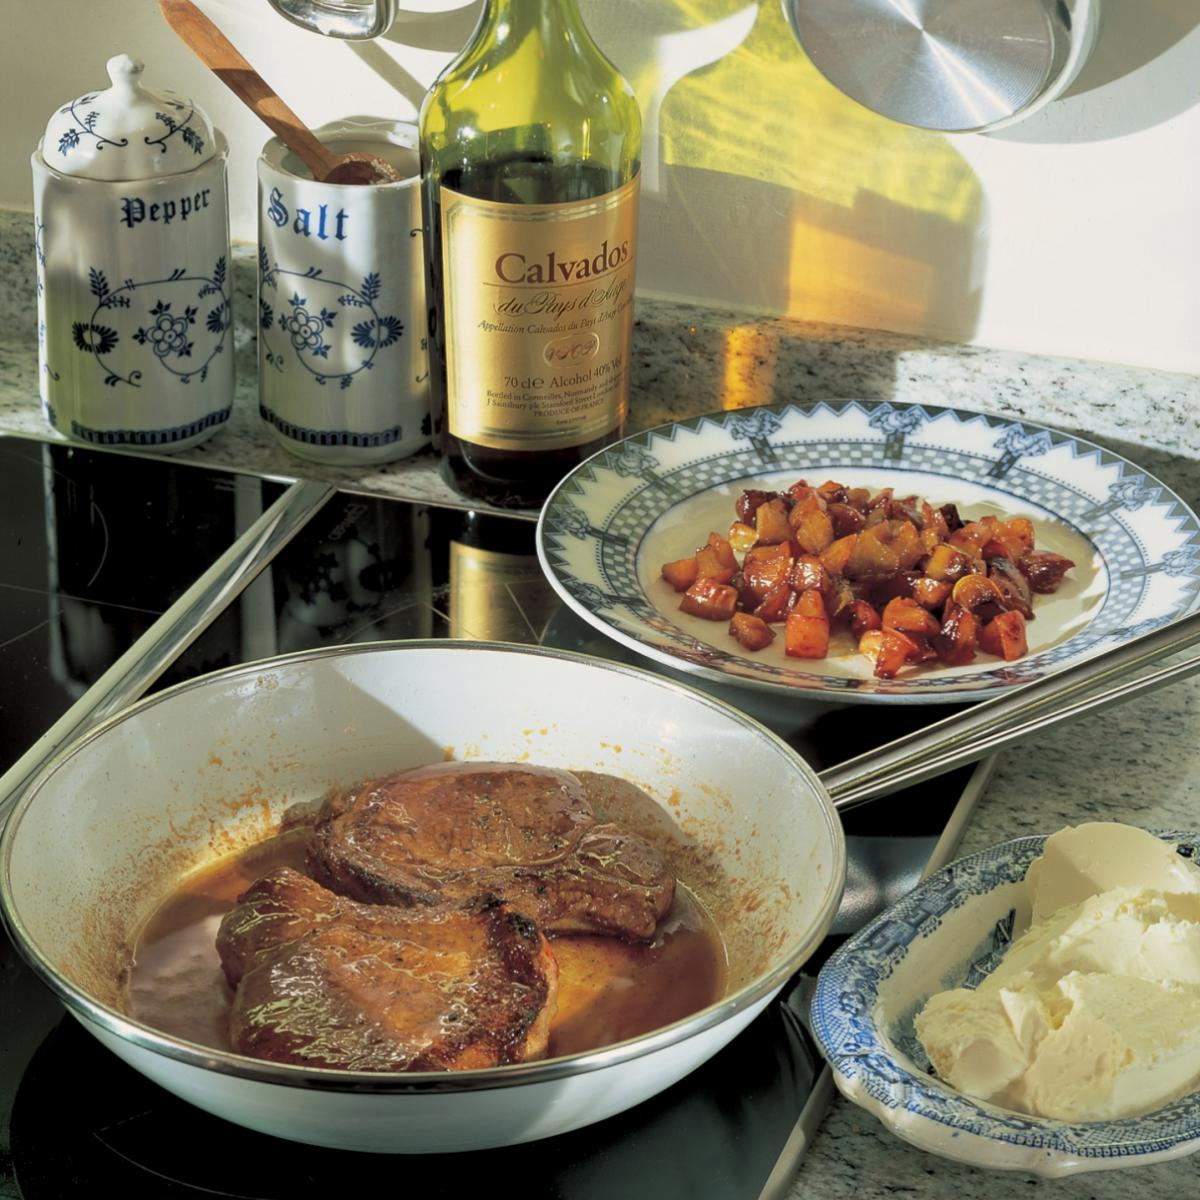 A picture of Delia's Pork with Apples and Calvados recipe